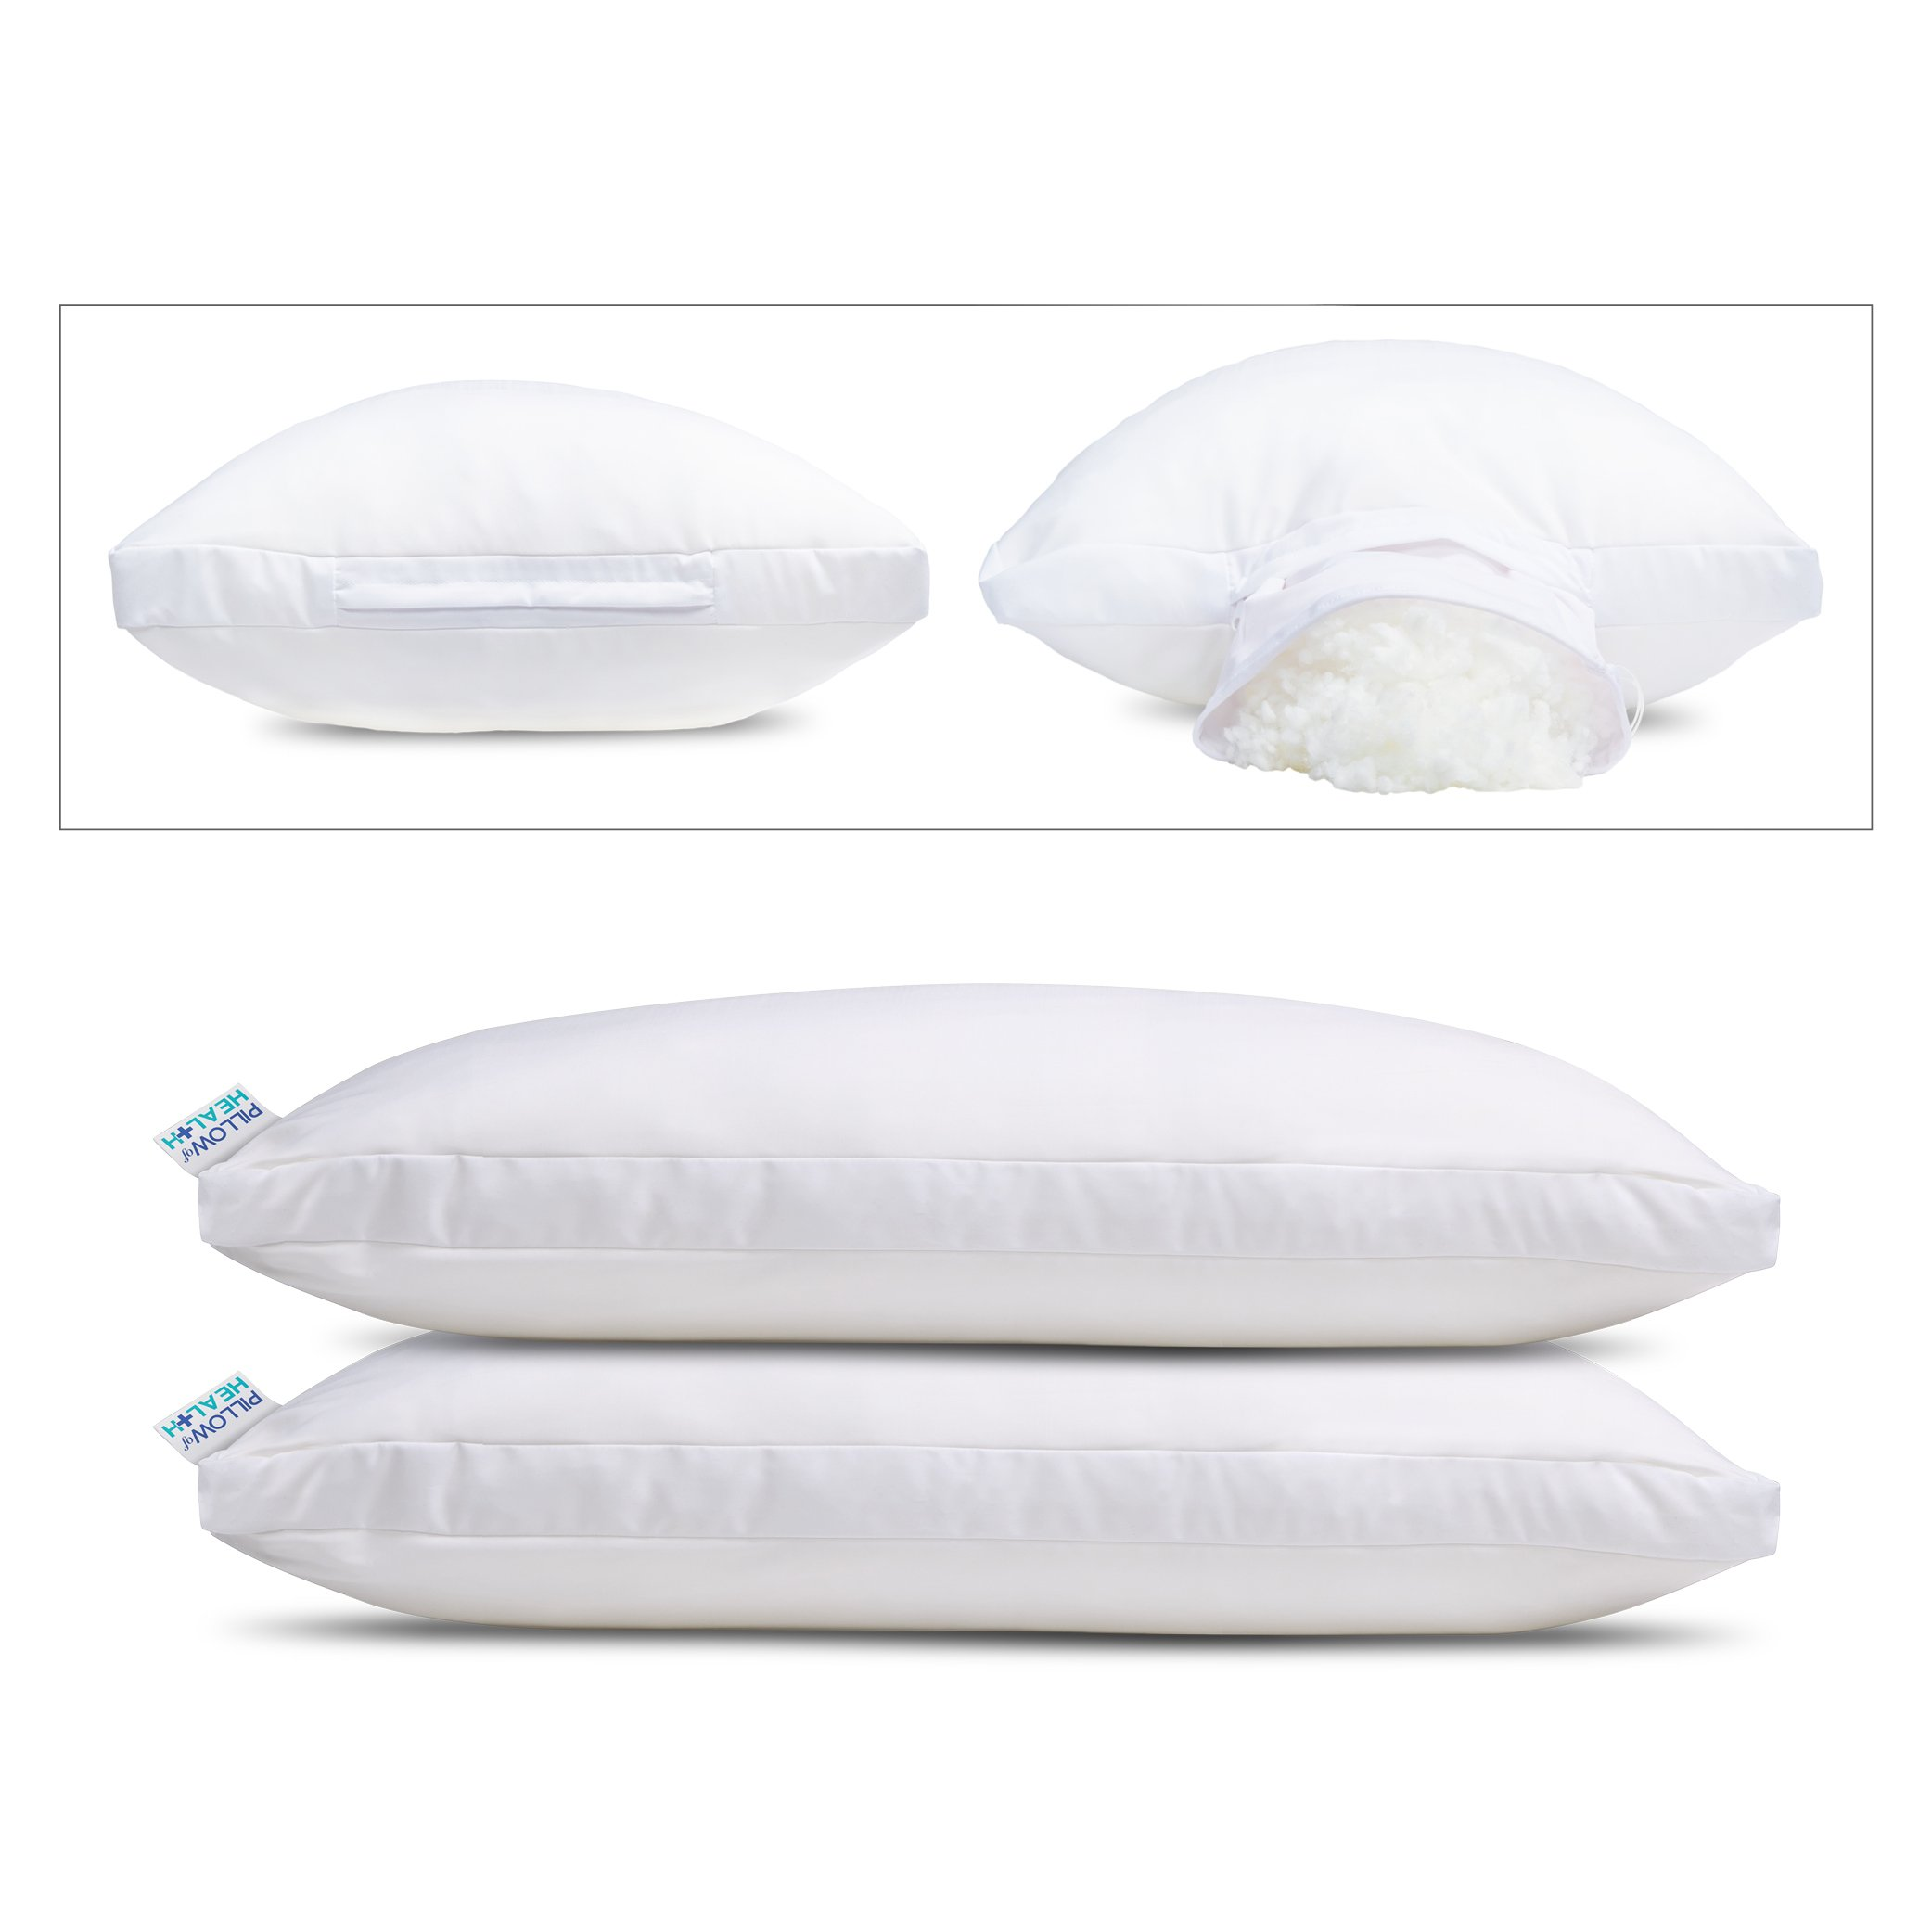 PILLOW of HEALTH - Superior Support Pressure Relief with Gusset | Luxury, Adjustable, Therapeutic Pillow | Patented Design | Antimicrobial, Hypoallergenic, Dust Mite Resistant - King 2 Pack